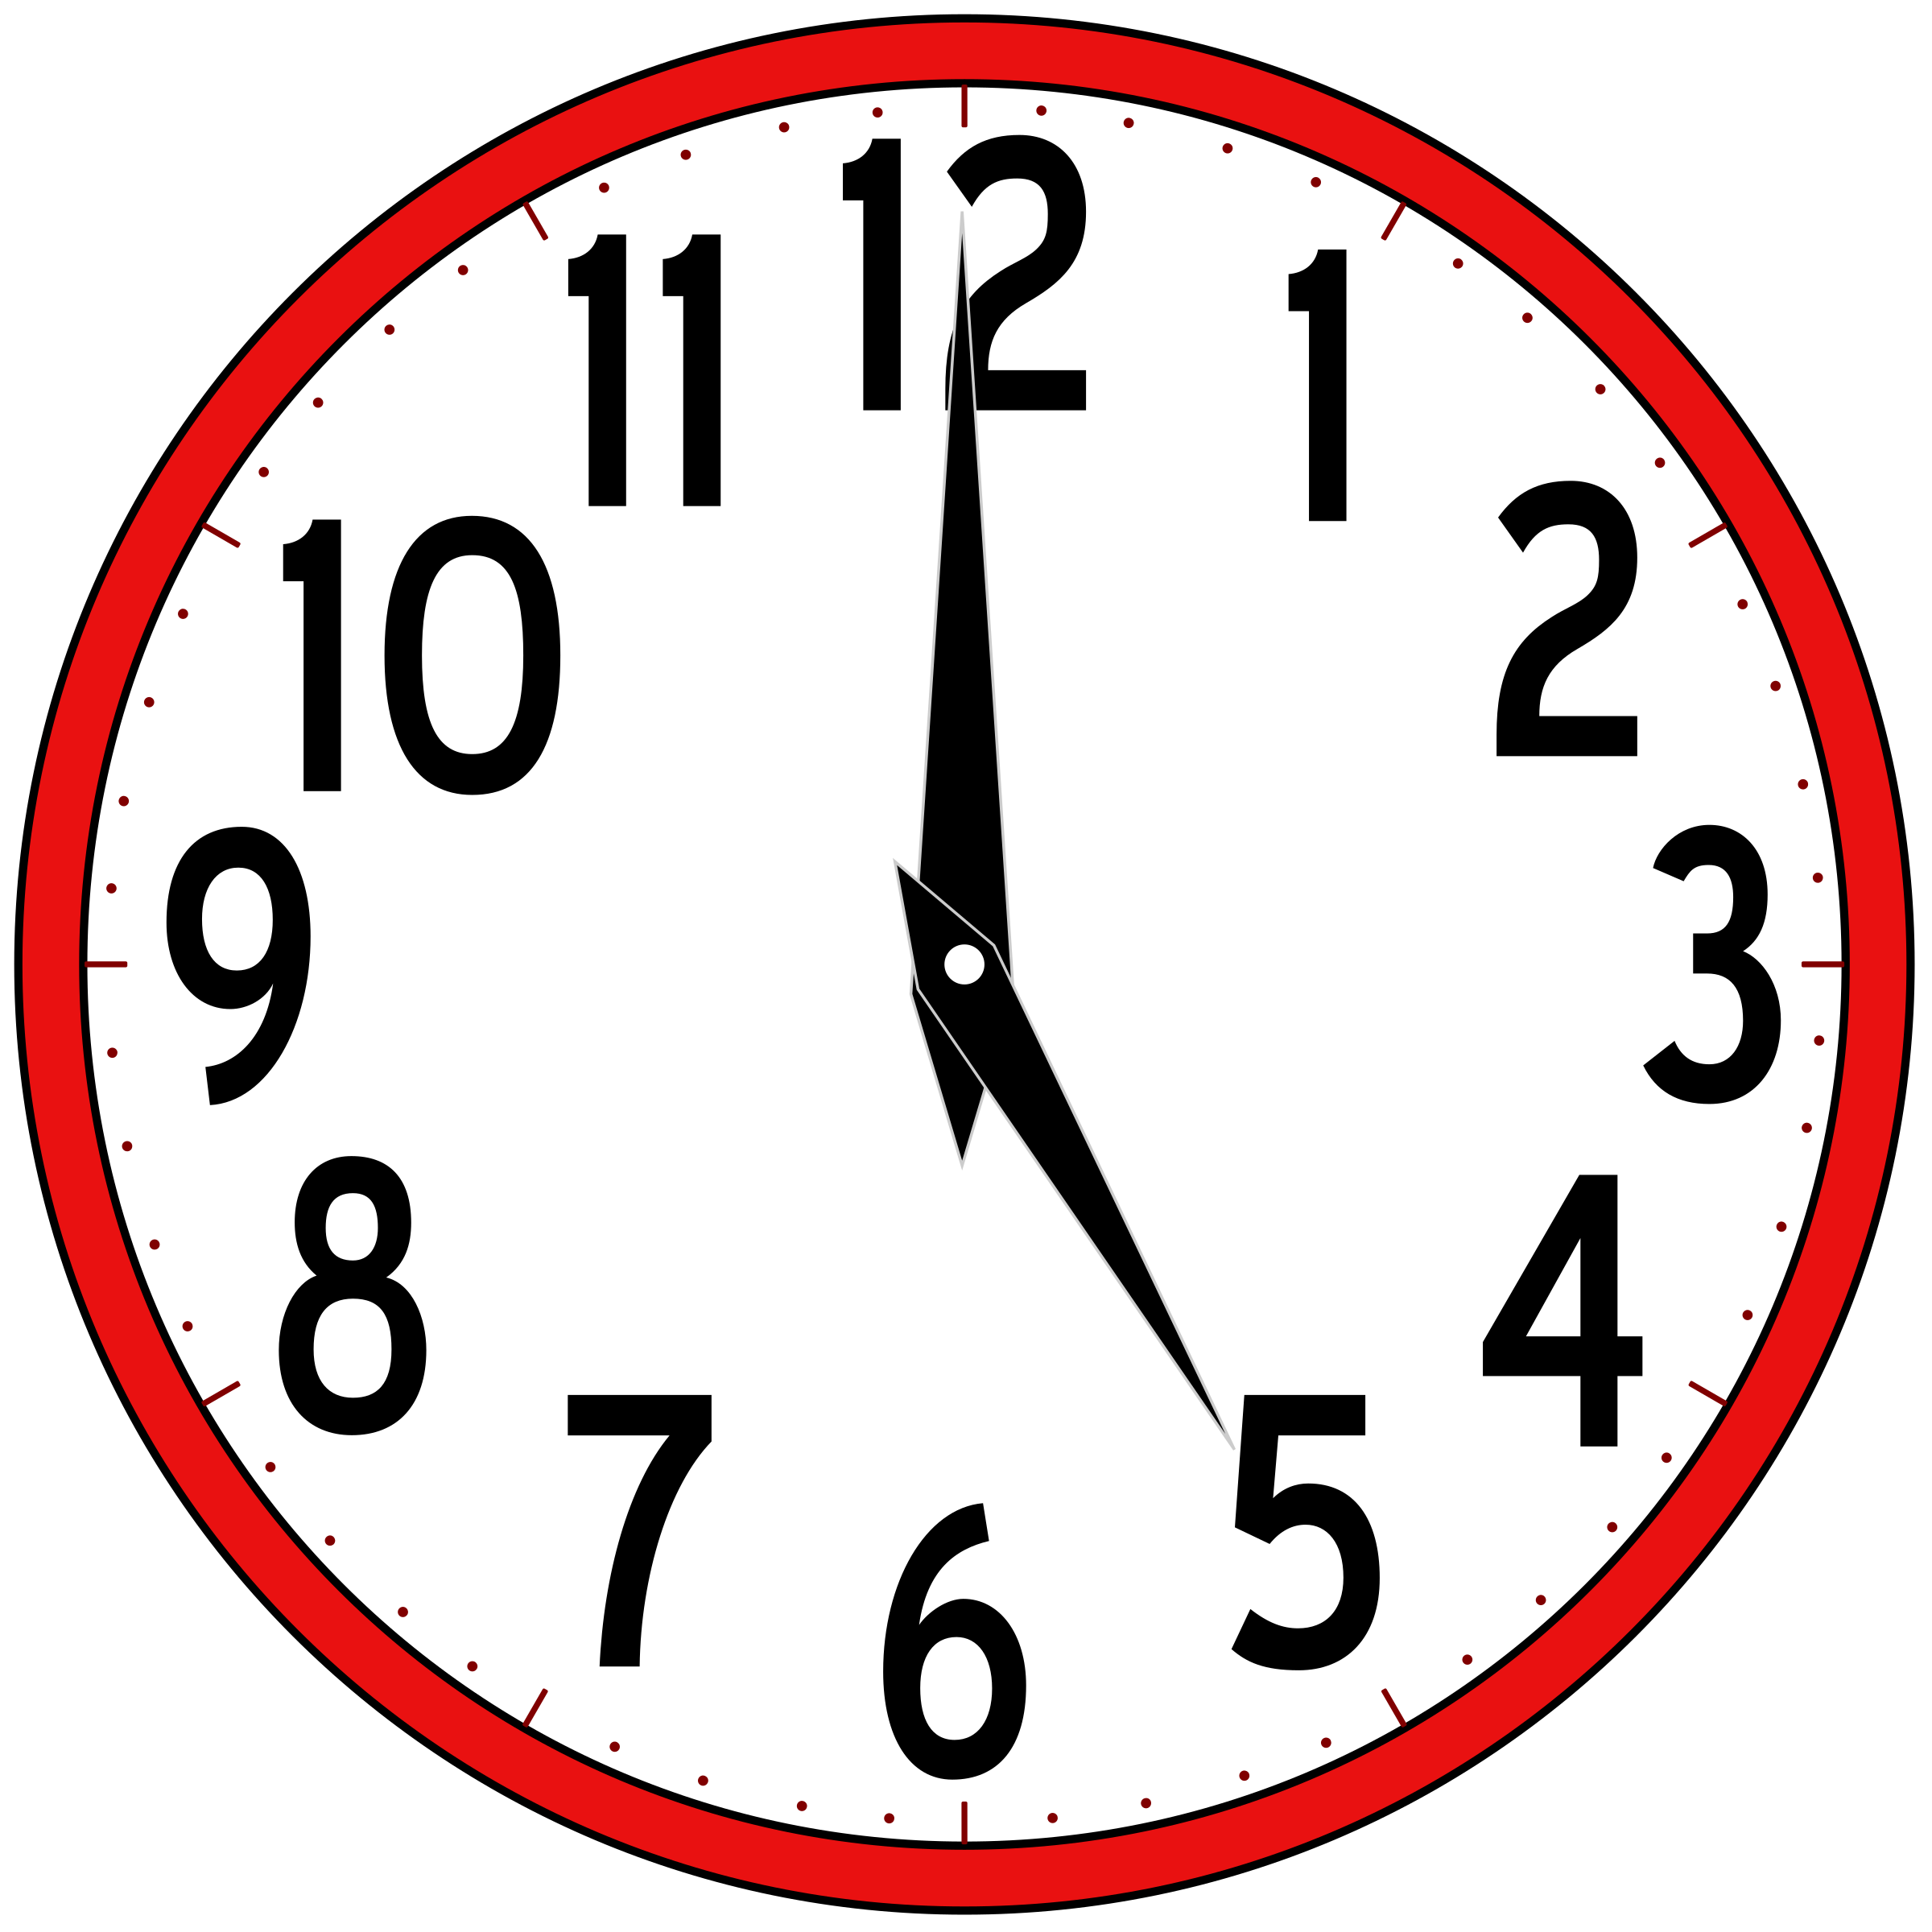 Clock design clipart graphic black and white library Pictures Of Clocks | Free download best Pictures Of Clocks on ... graphic black and white library